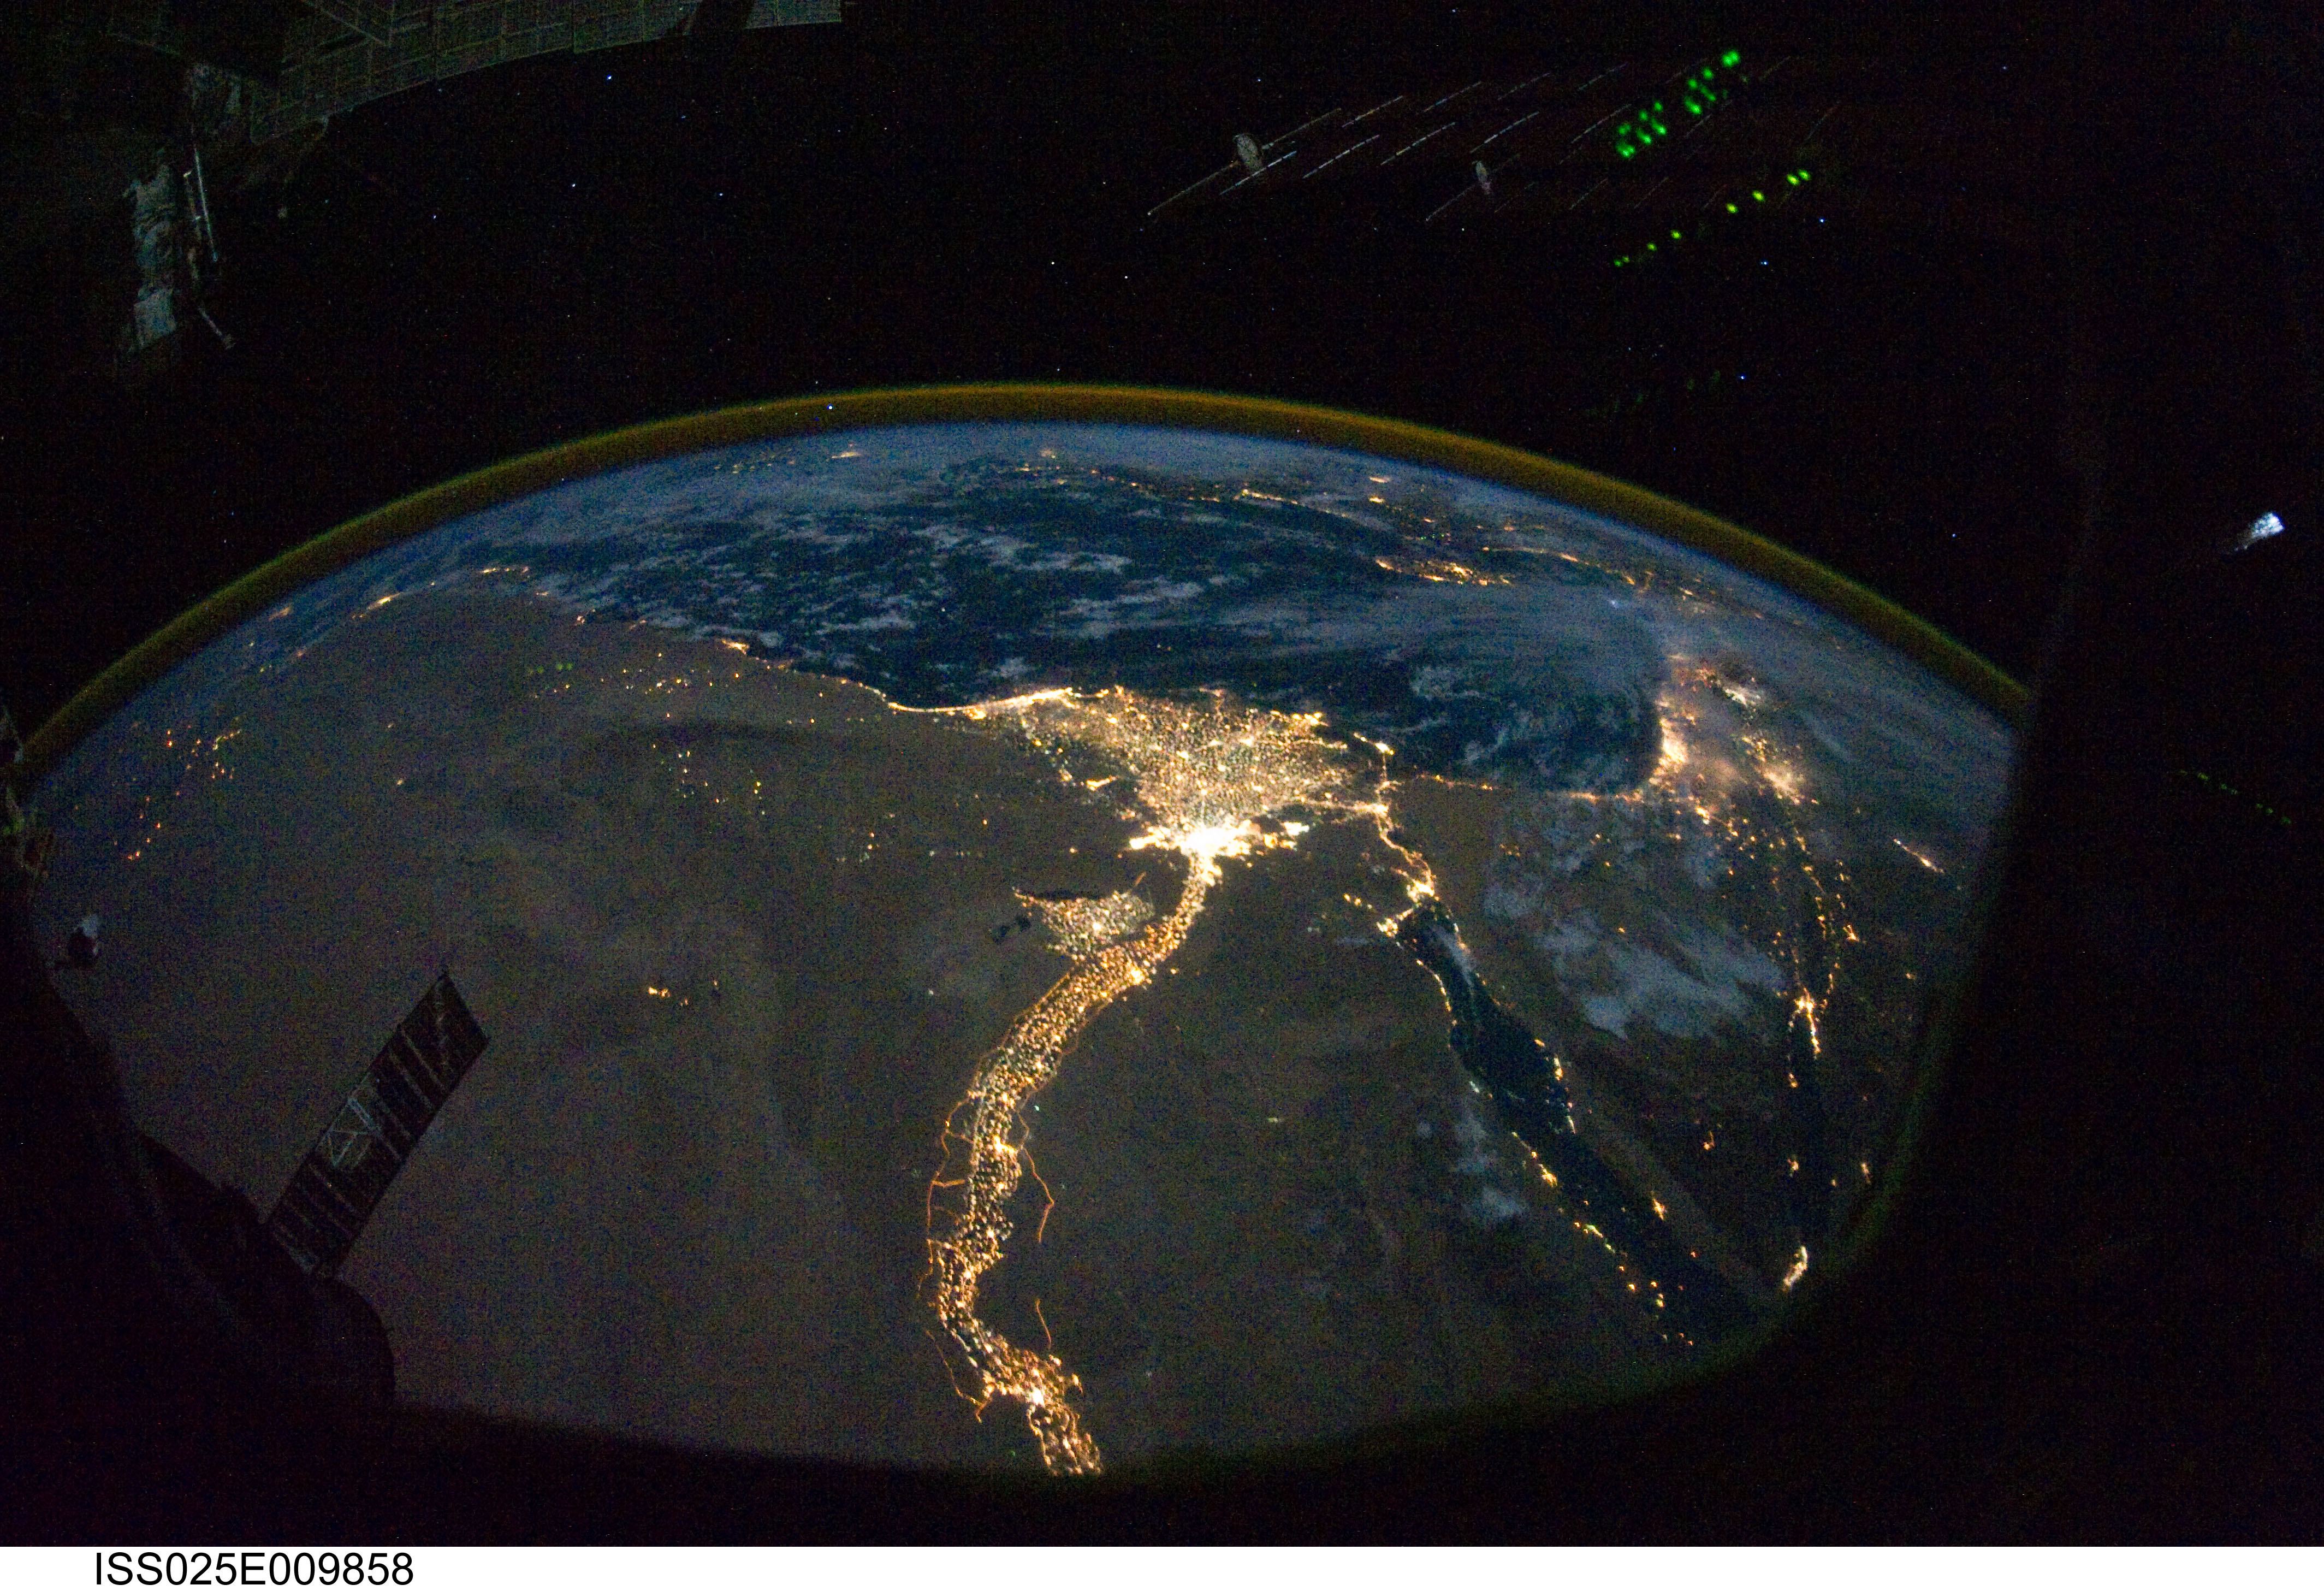 Nighttime Egypt seen from the International Space Station. By NASA's Marshall Space Flight Center.